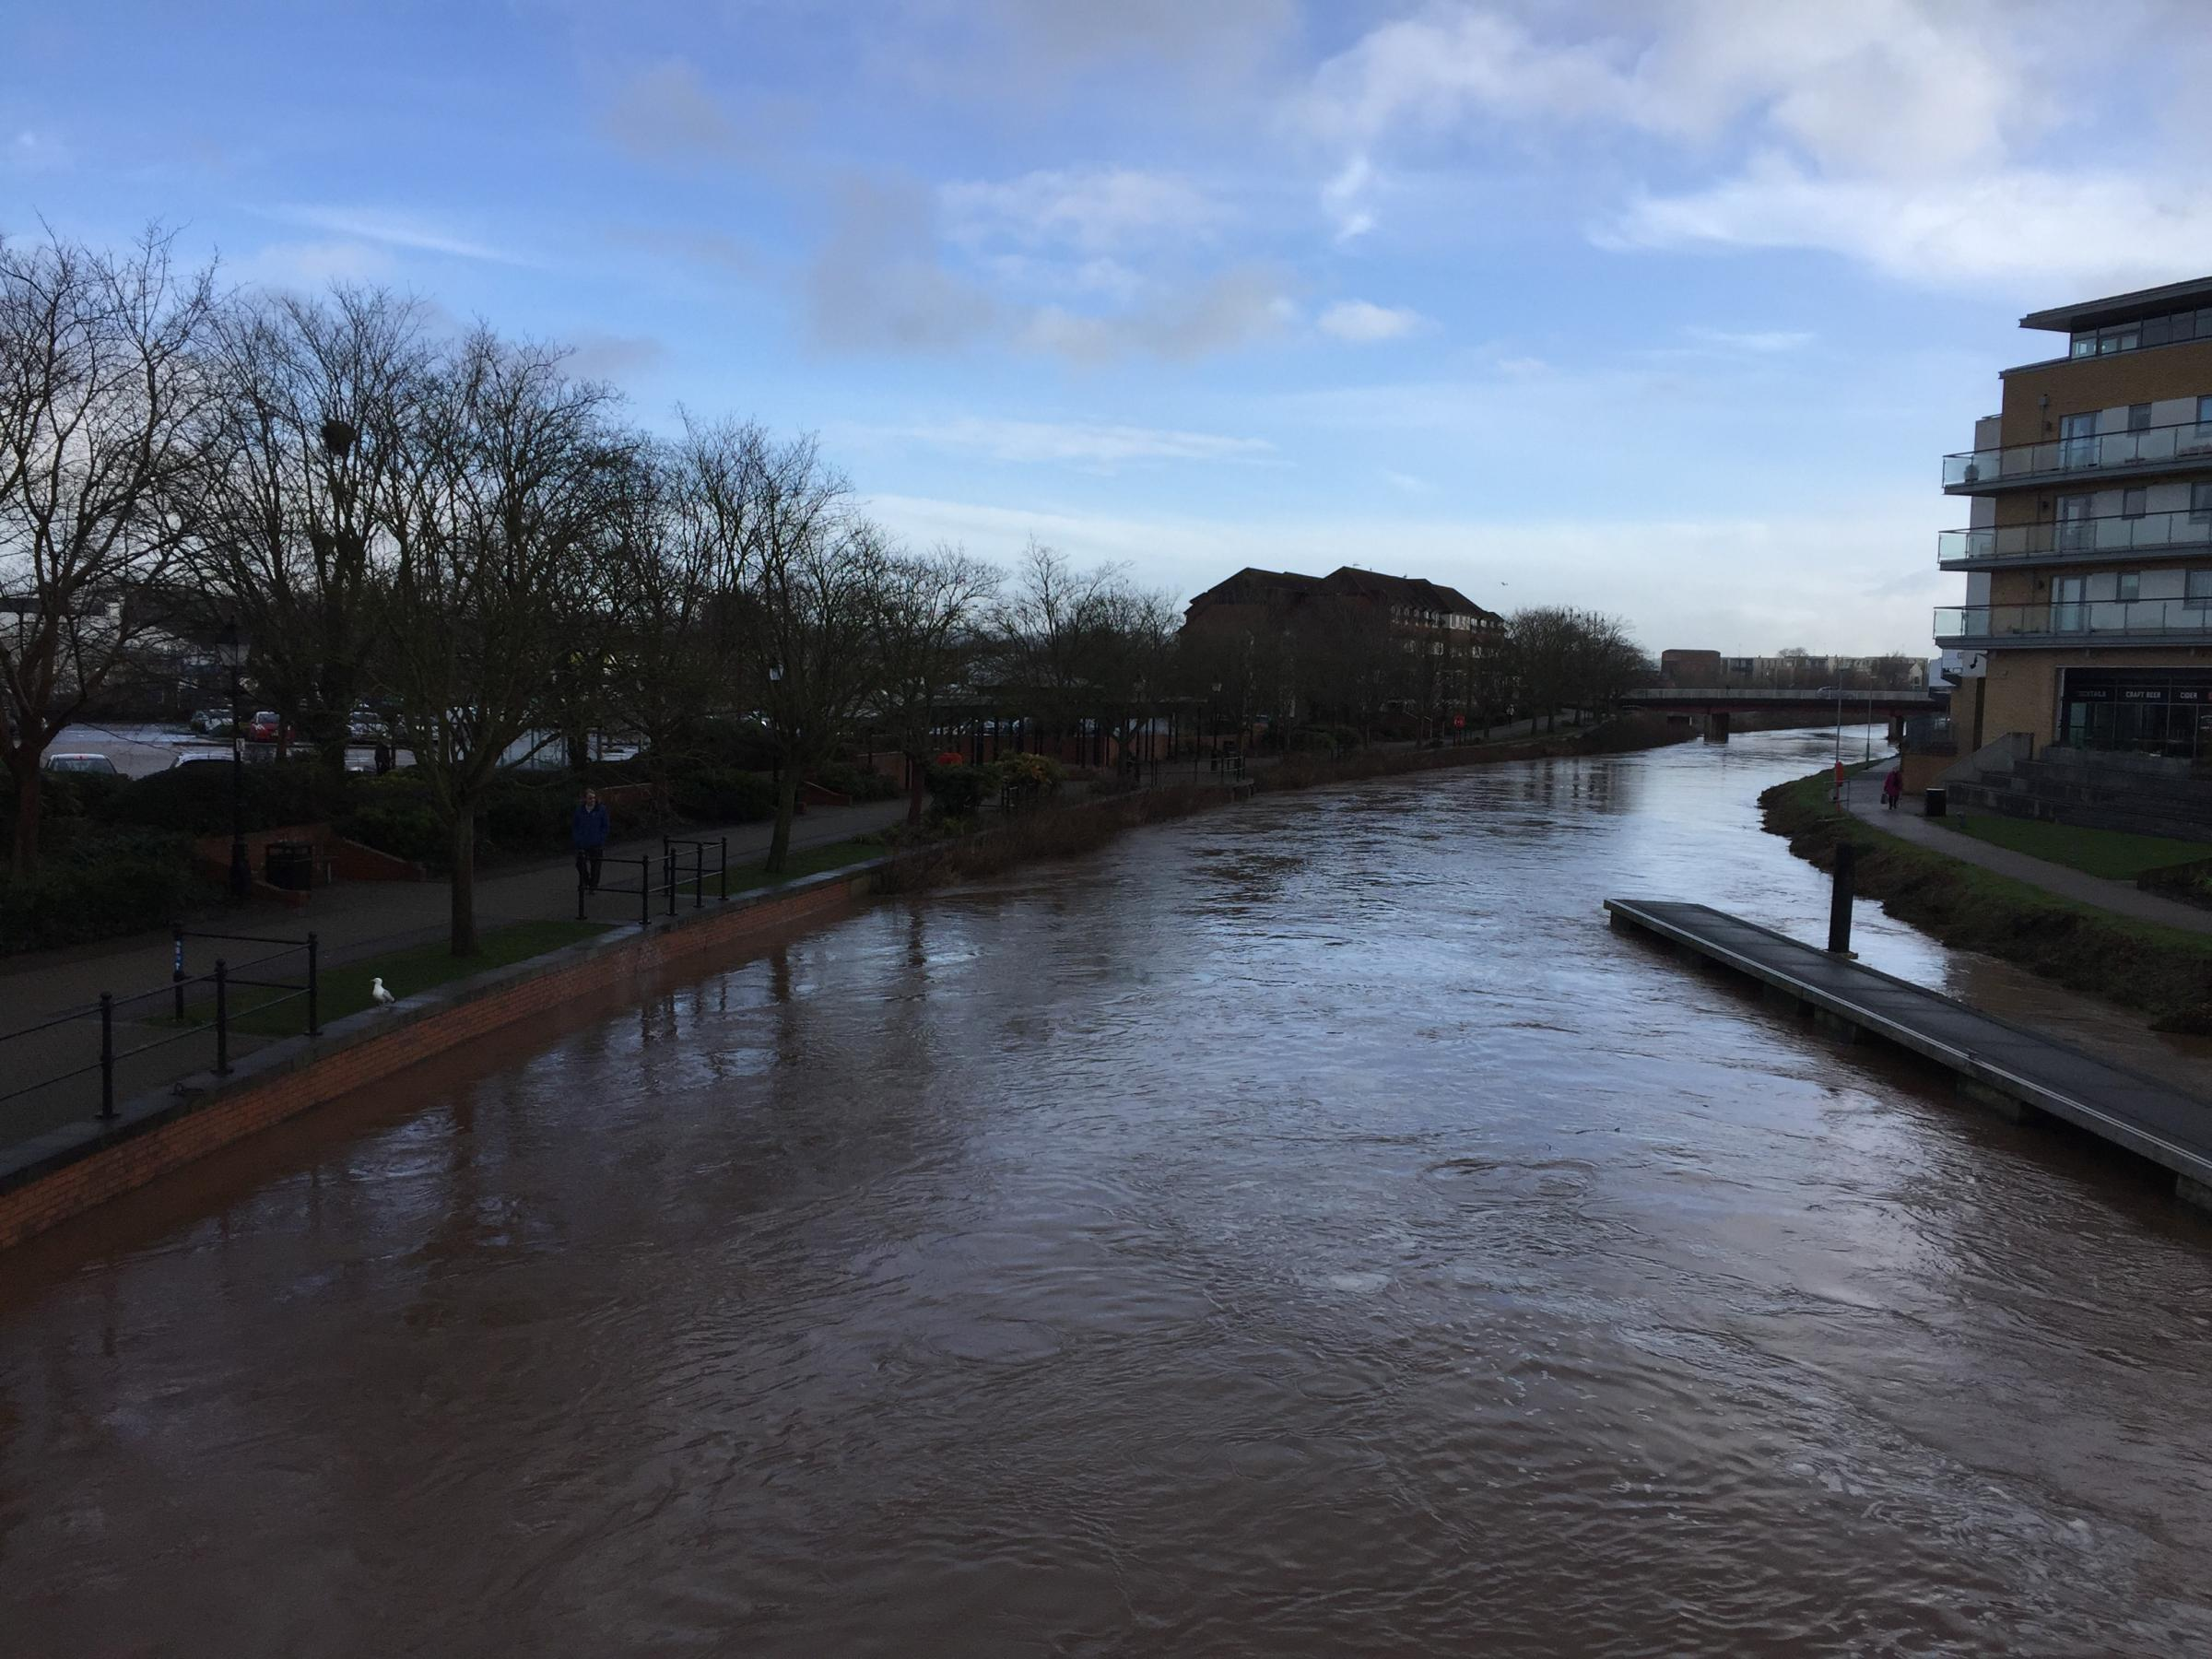 FLOOD PREVENTION: High water levels on the River Tone